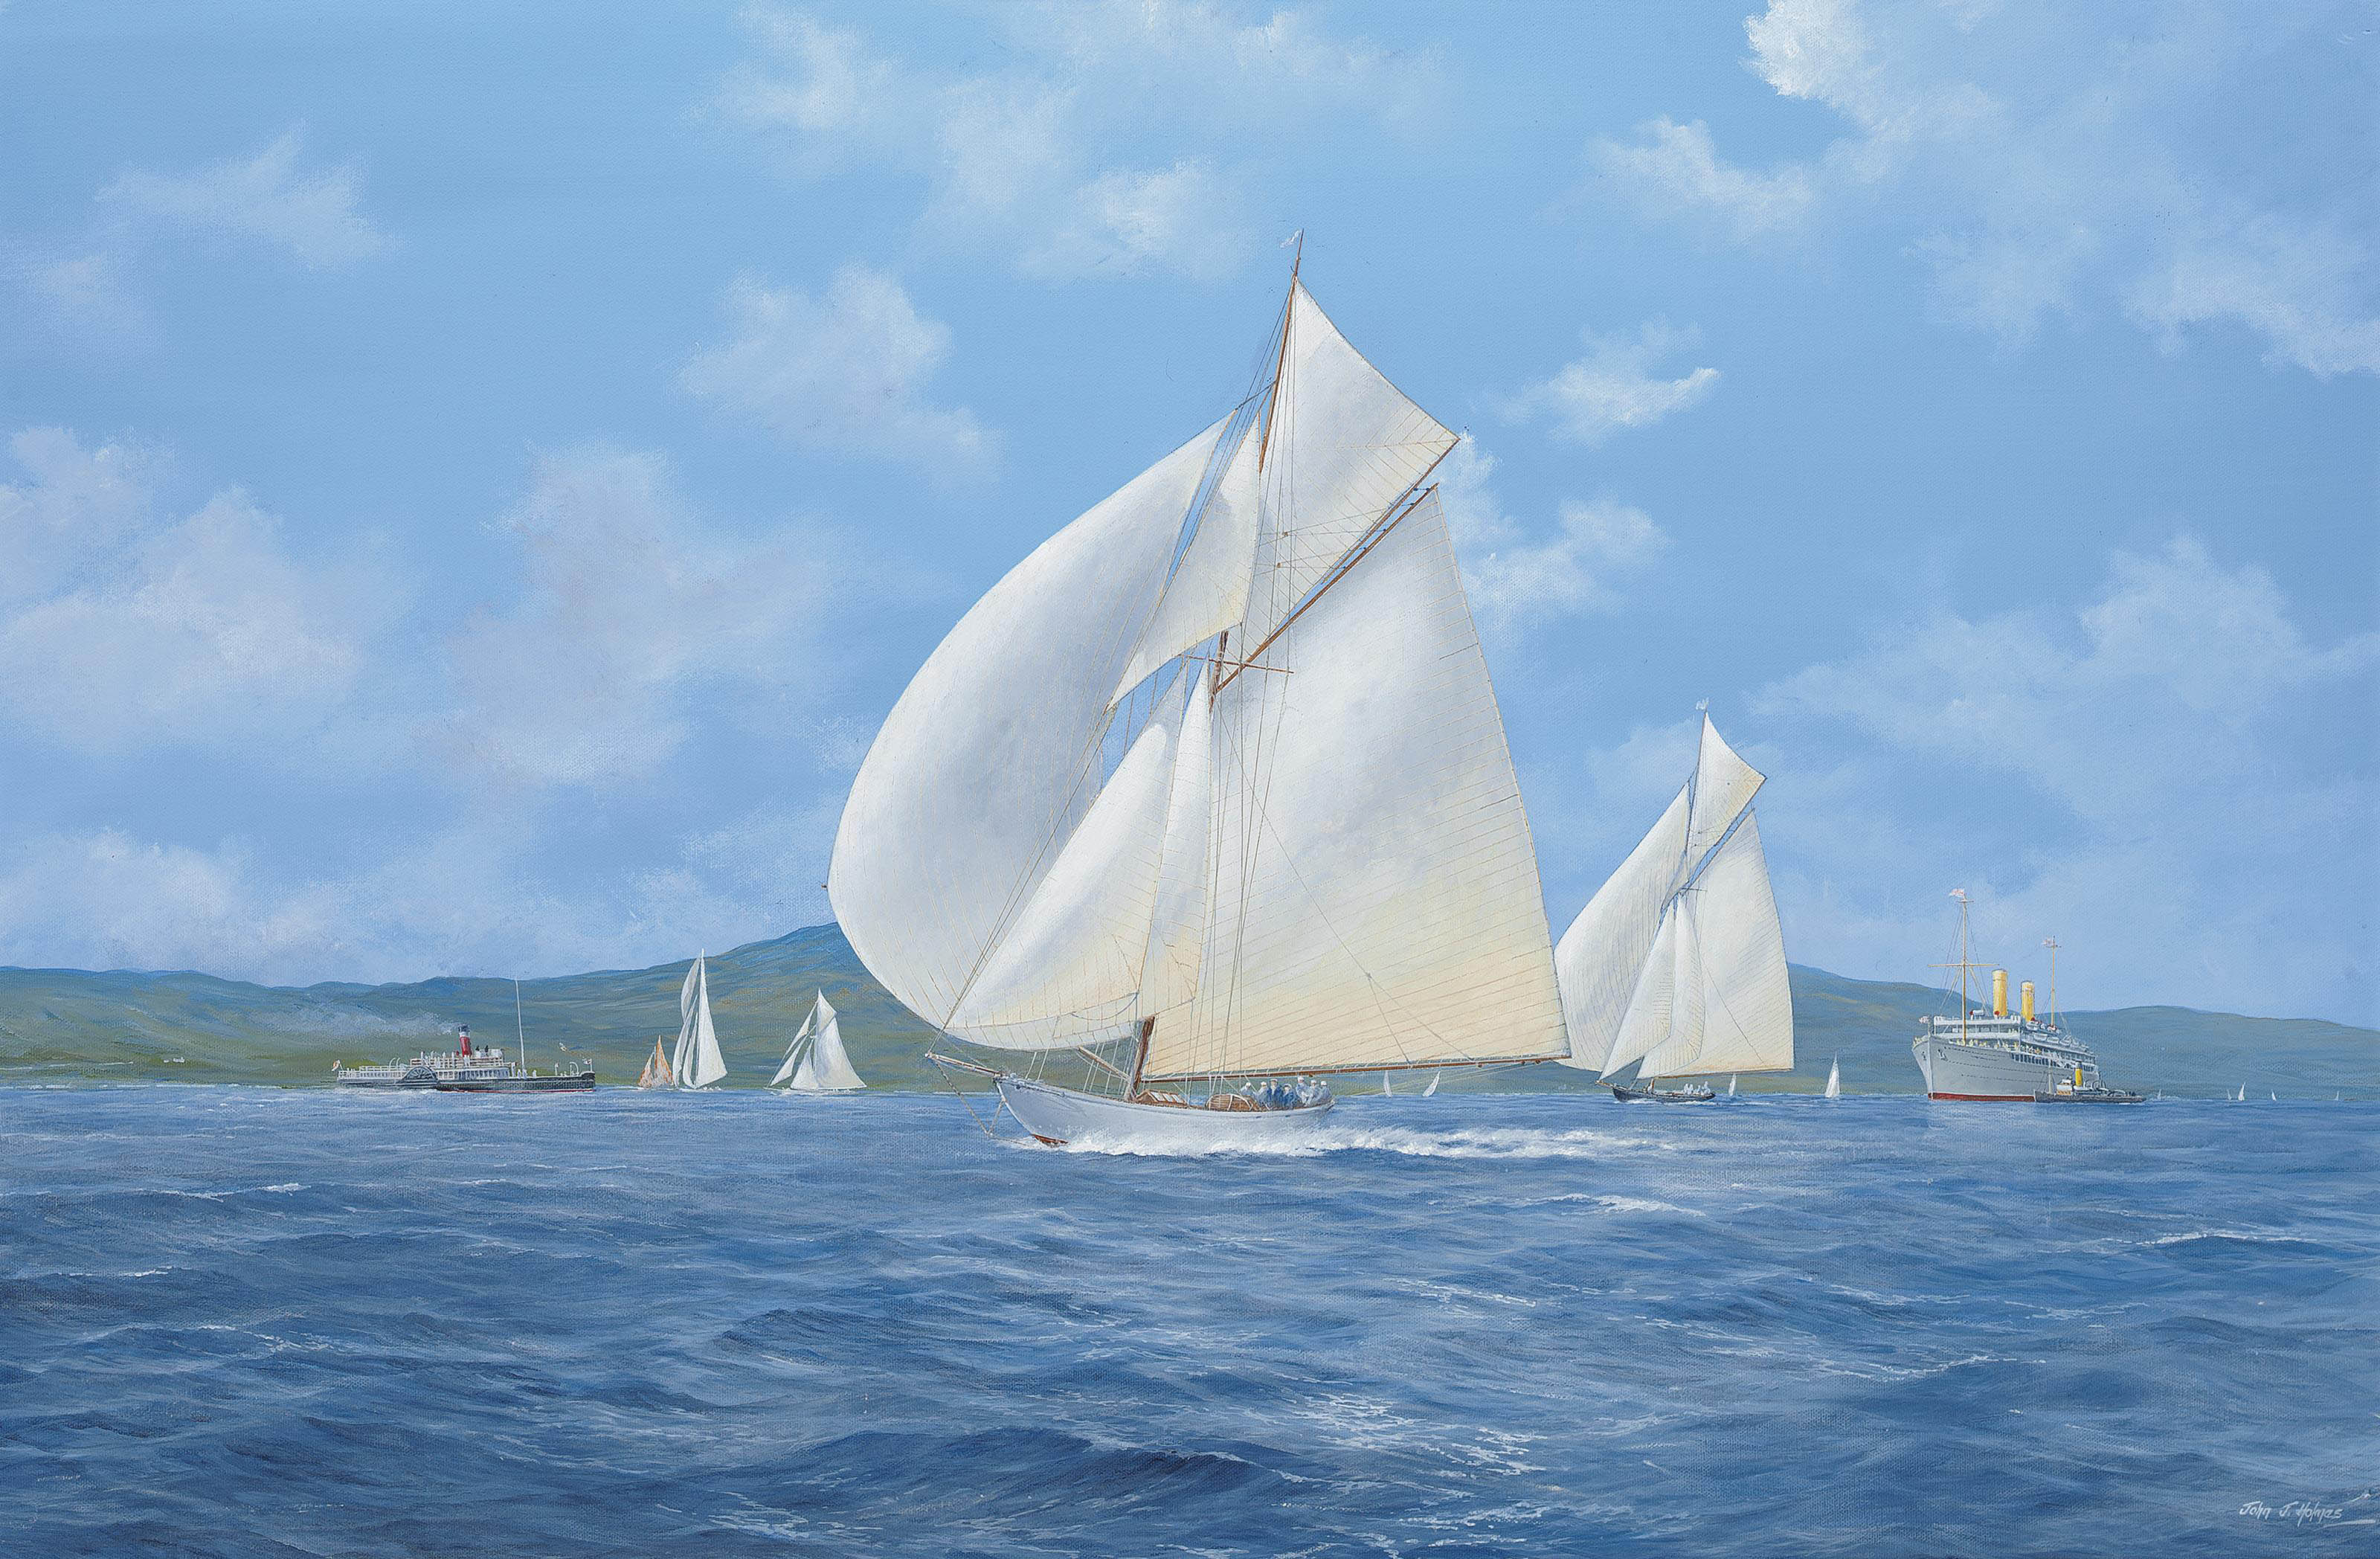 Sonya and Candida racing downwind on the Clyde with the paddle steamer Marmion and H.M.S. Balmoral Castle astern of them (illustrated); and Lulworth and Candida racing on the Clyde with the Union Castle Line's Edinburgh Castle at anchor beyond